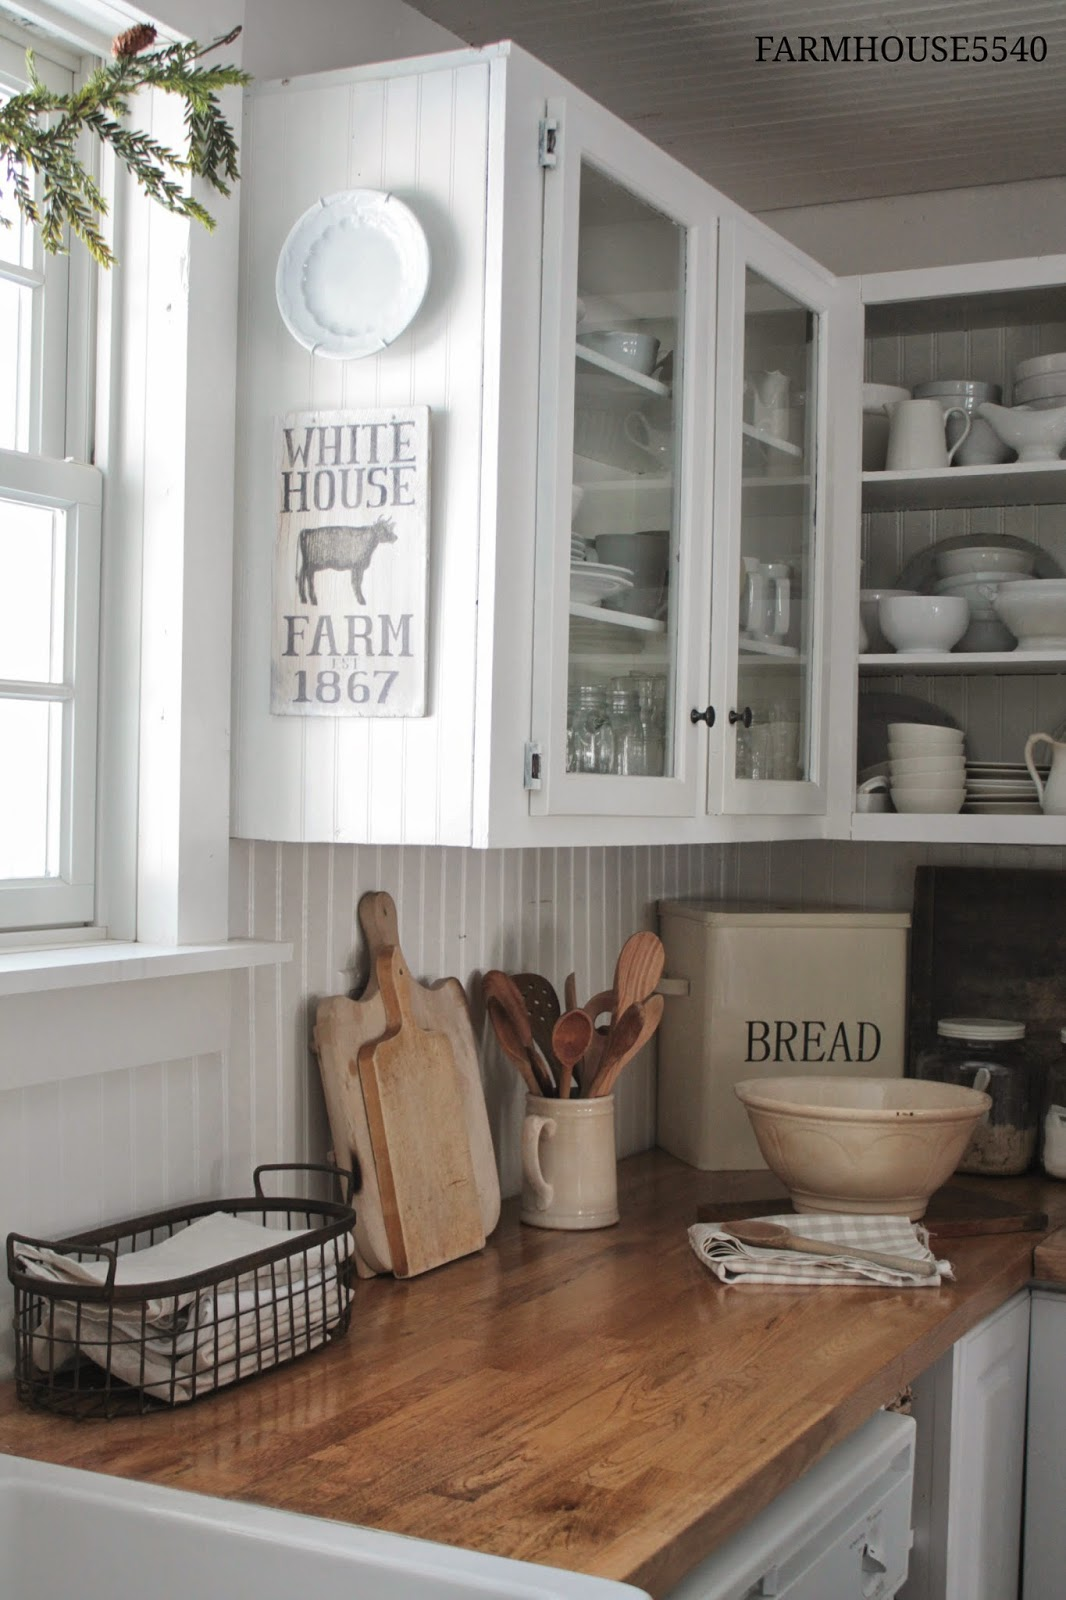 Farmhouse Kitchen Decor: 7 Ideas For A Farmhouse Inspired Kitchen {on A BUDGET